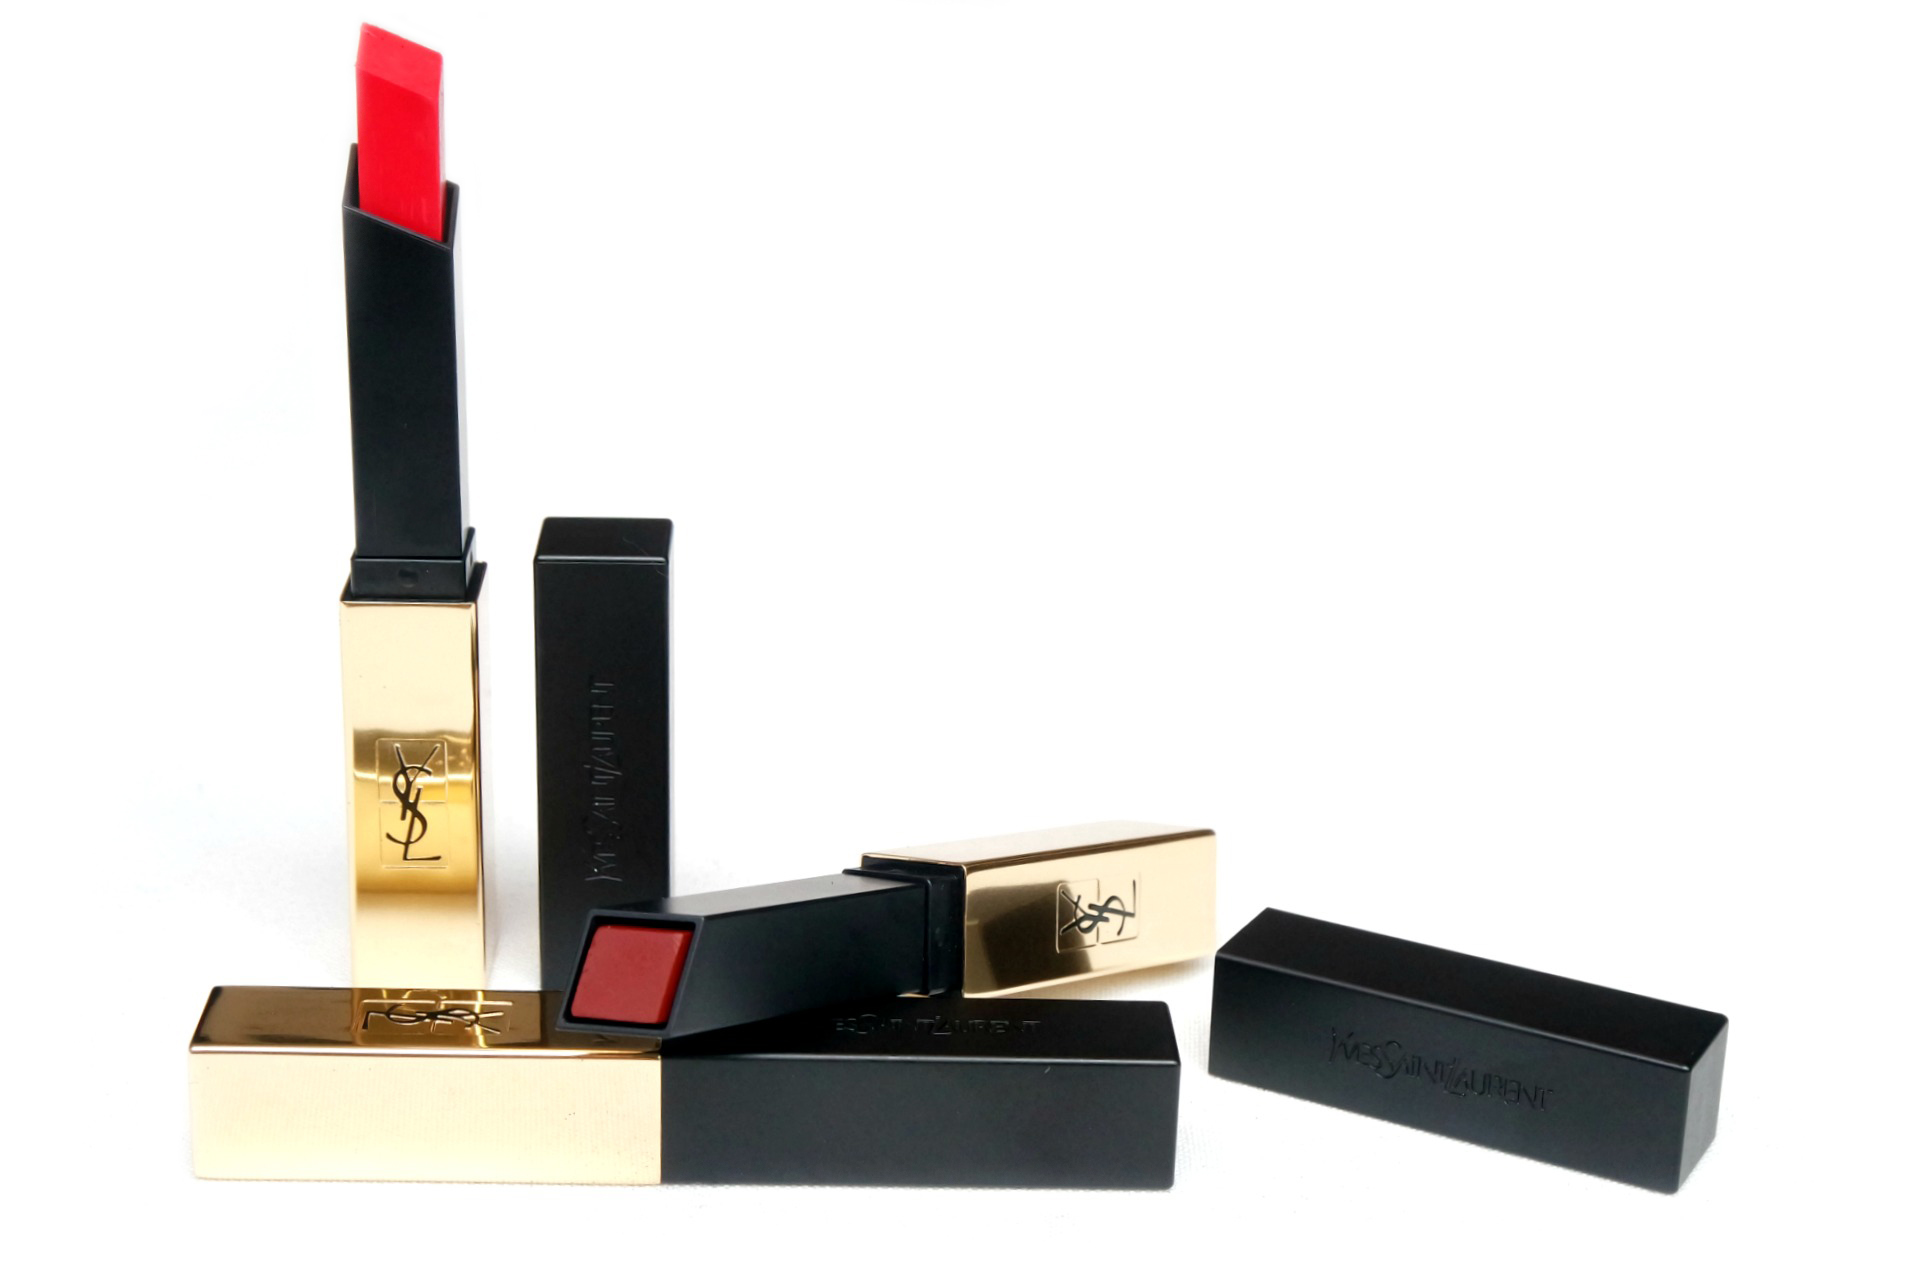 YSL Rouge Pur Couture The Slim Matte Lipstick Review - The Beautynerd